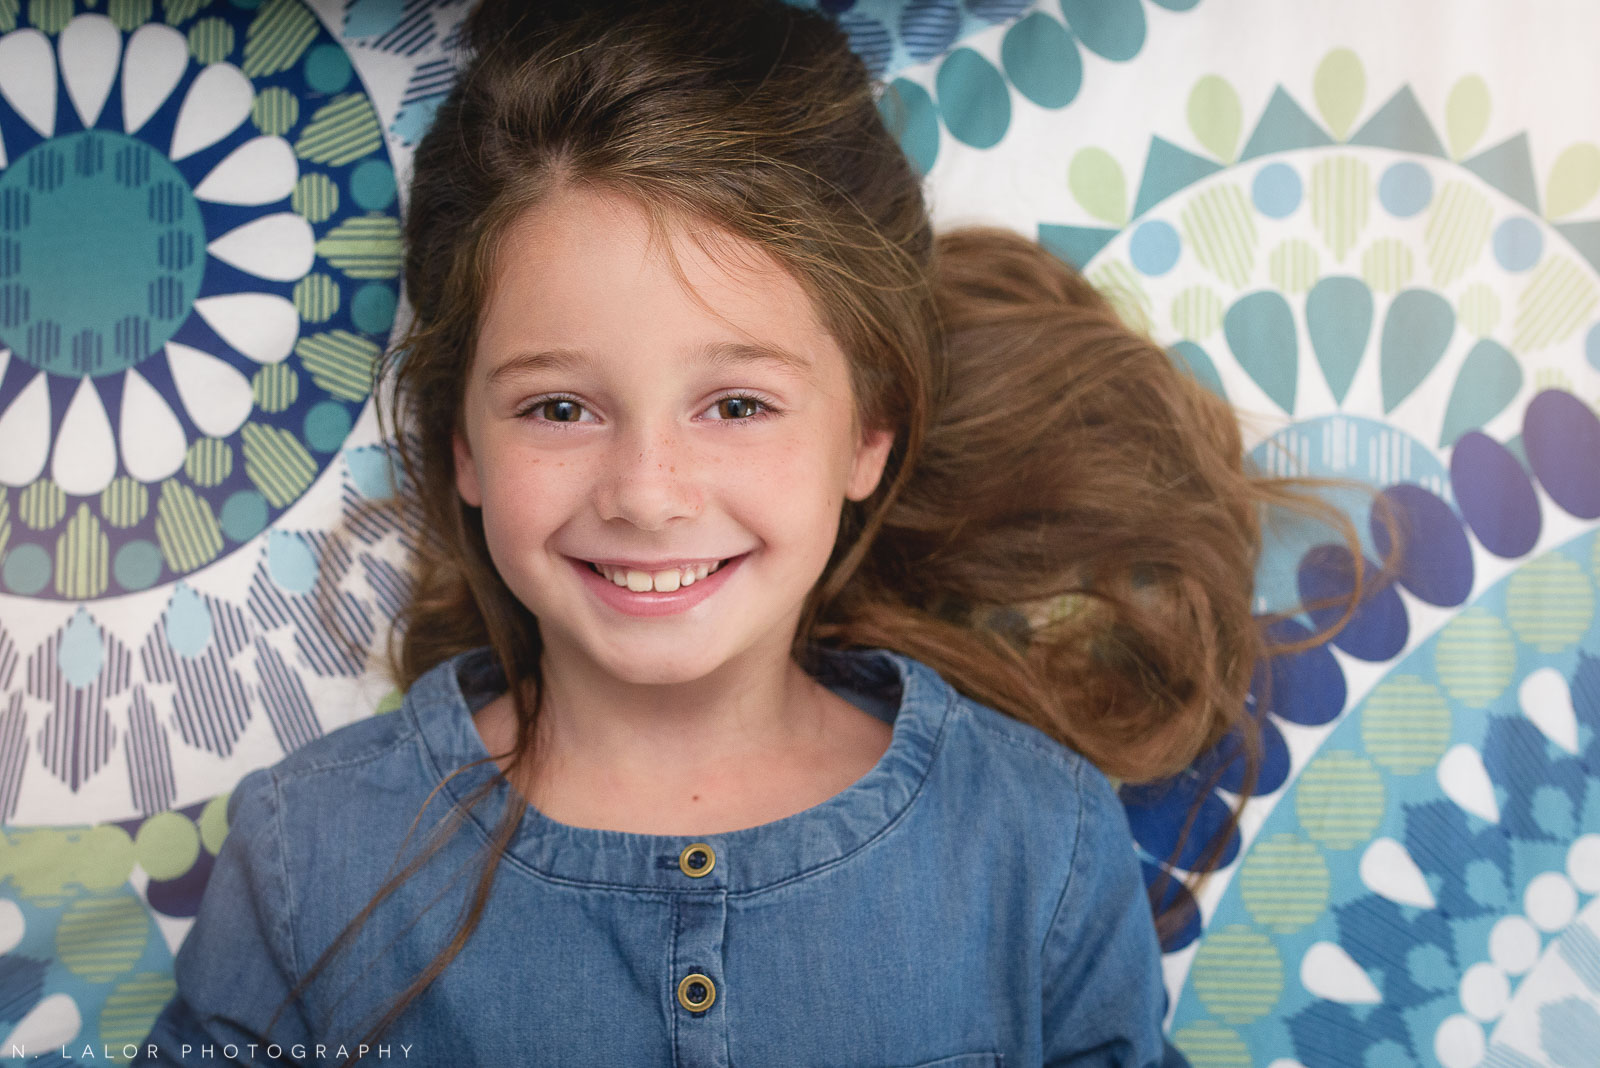 Lifestyle smiling portrait of 6-year old girl. Photo by N. Lalor Photography.